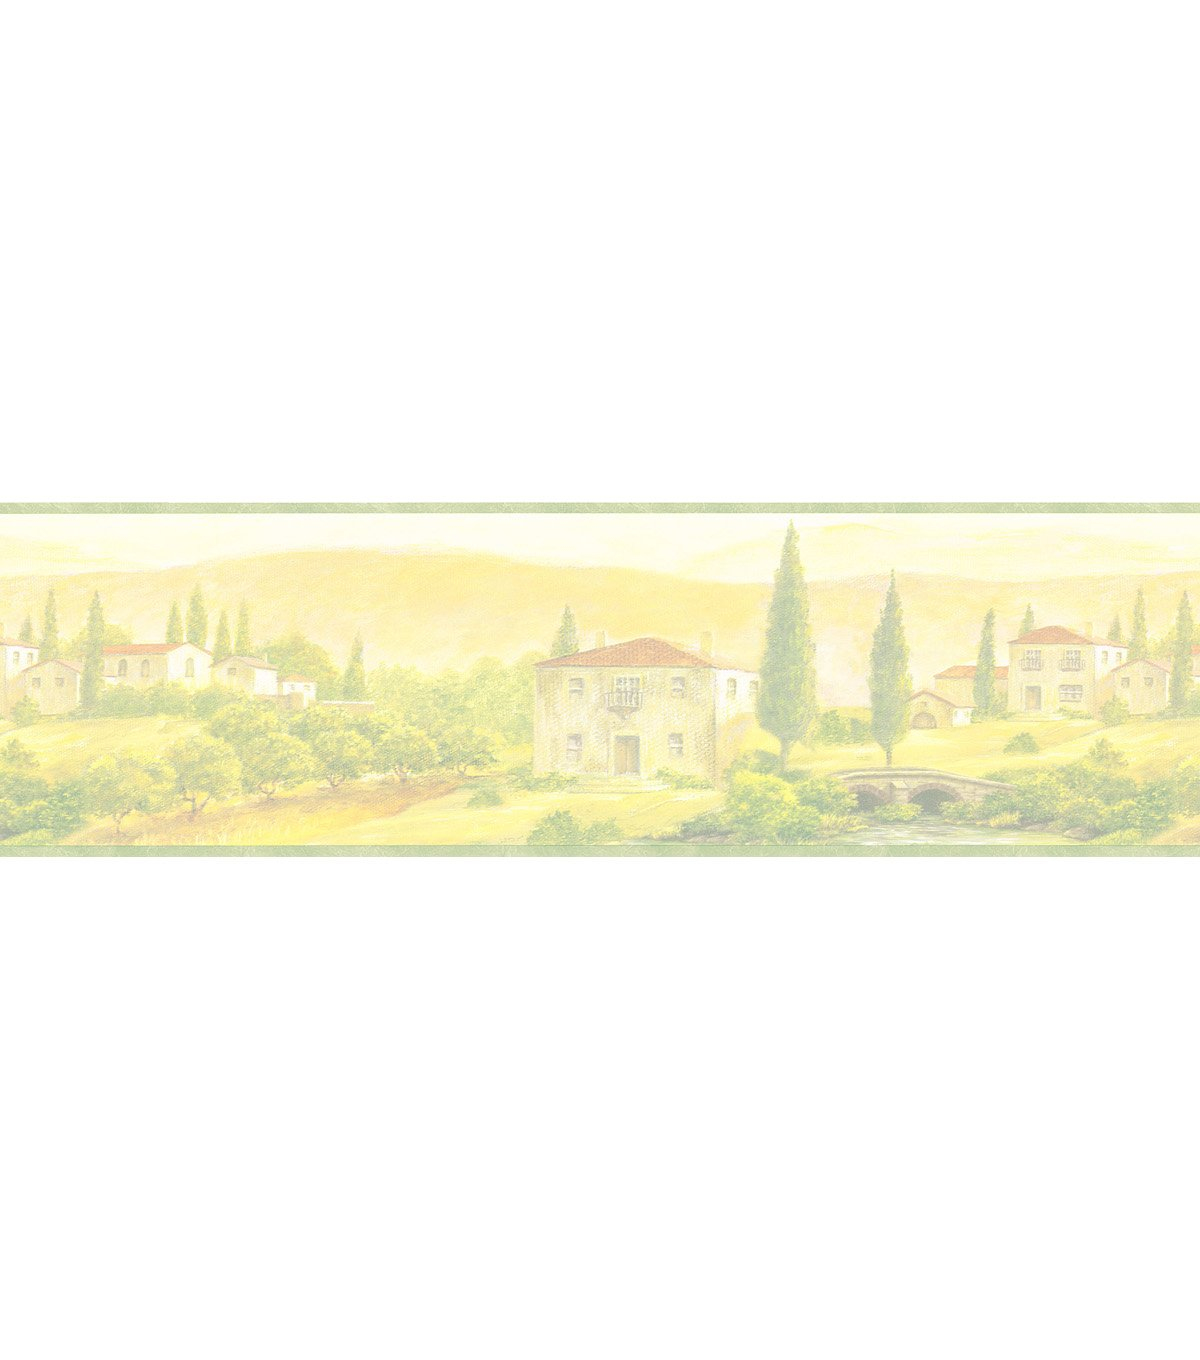 Scenic Tuscany Wallpaper Border Multicolor SampleScenic Tuscany 1200x1360